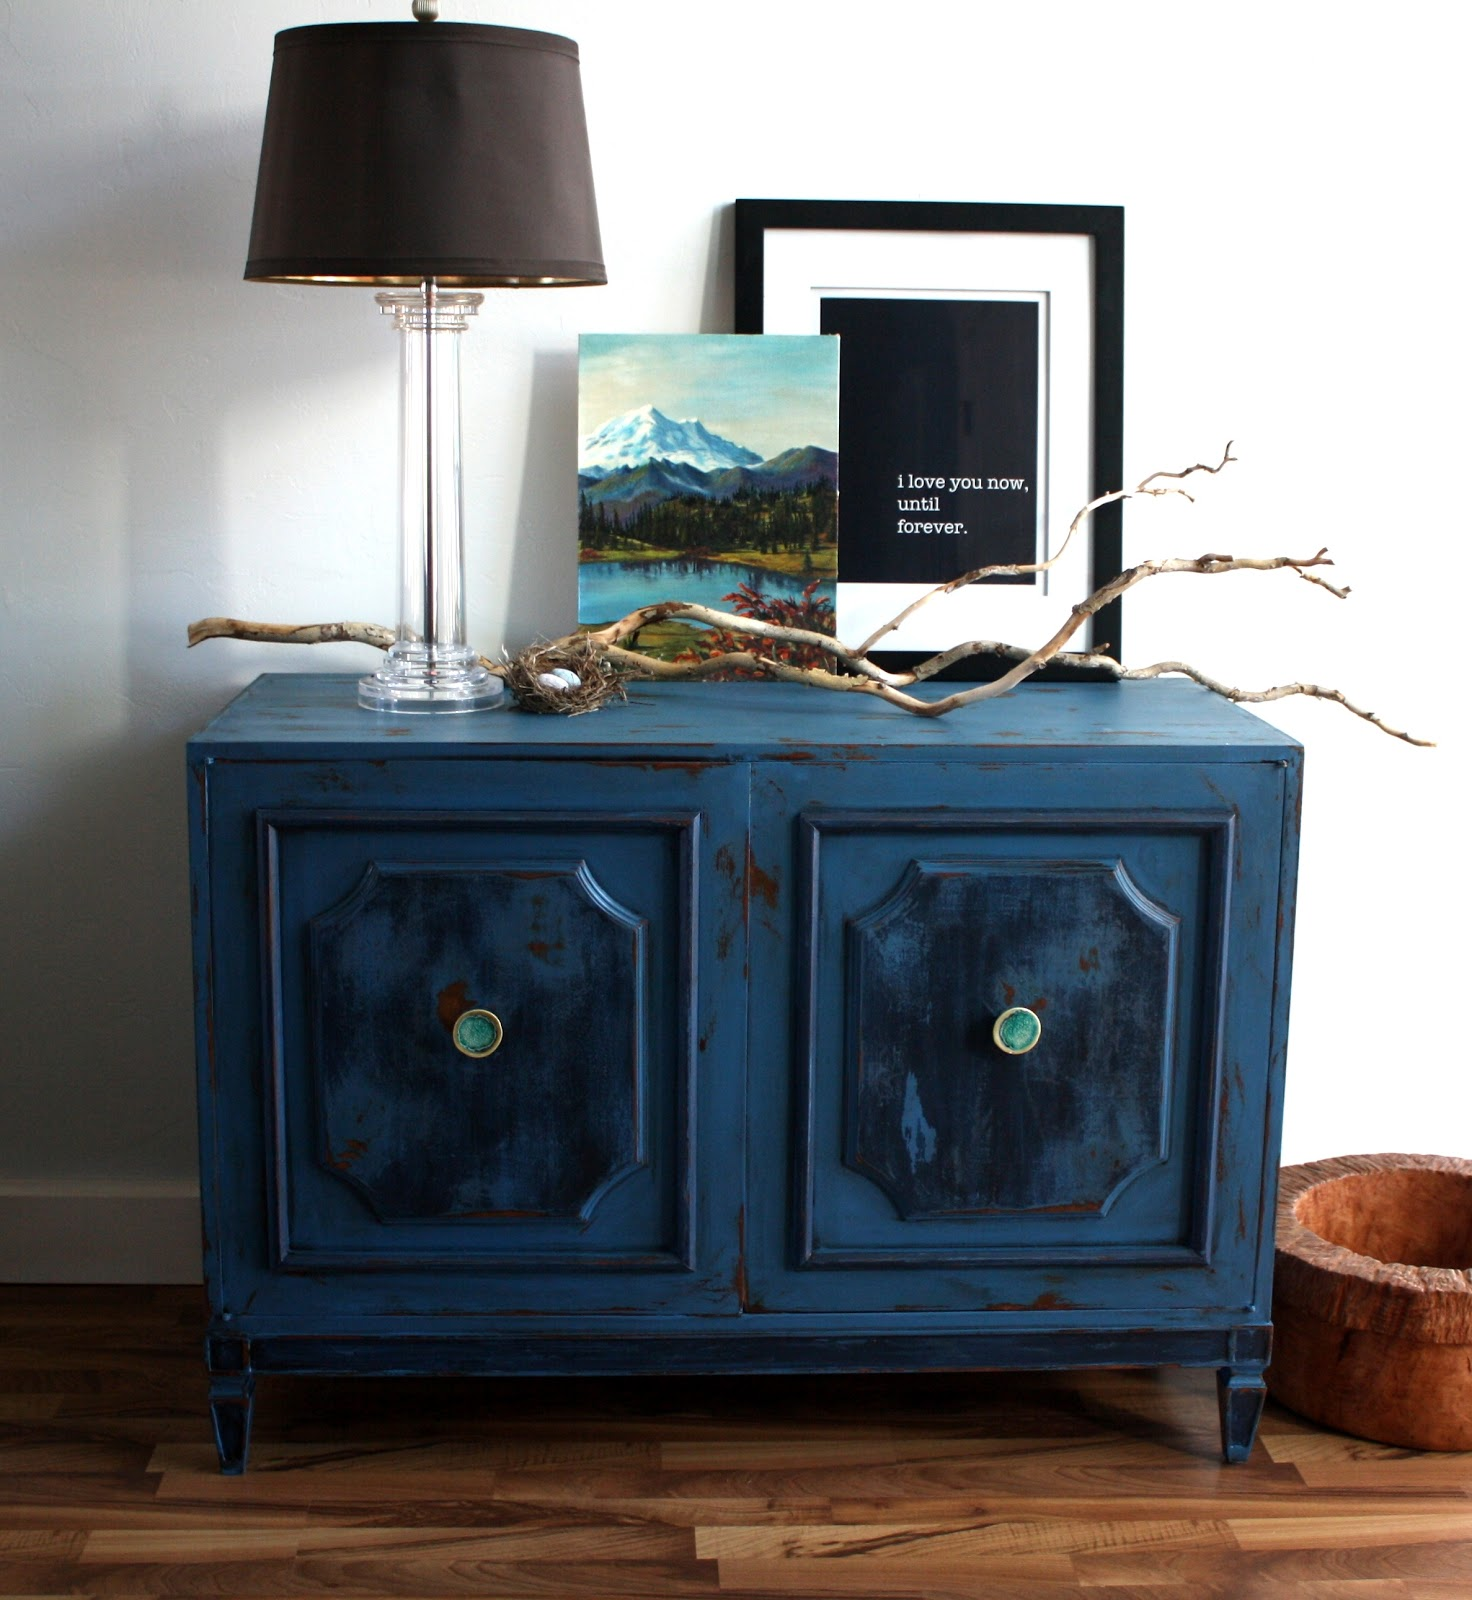 The Turquoise Iris Furniture Art Getting The Best Of Blue